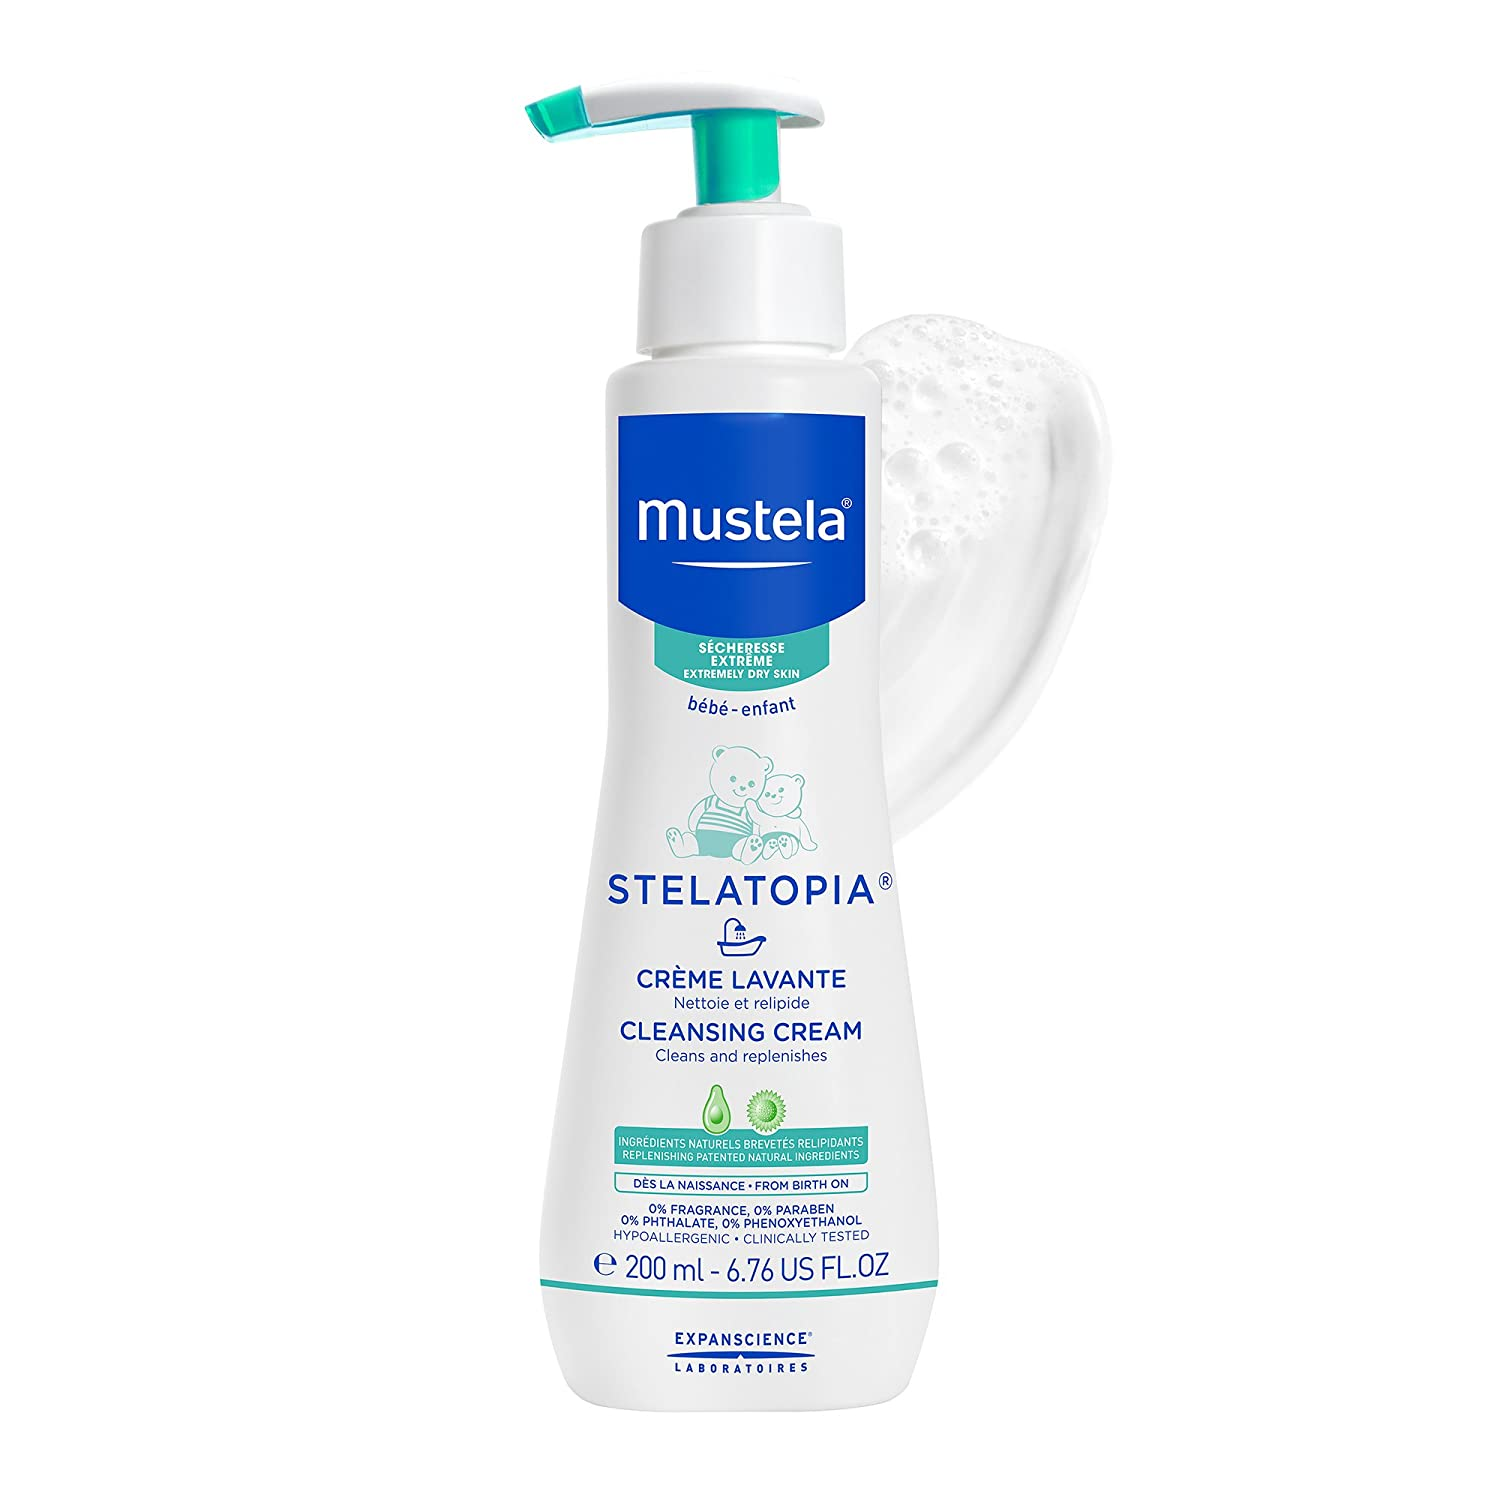 Mustela Stelatopia Cleansing Cream Baby Body Wash For Holiday Series Paris Im In Love 200ml Extremely Dry To Eczema Prone Skin Fragrance Free 676 Fl Oz Luxury Beauty